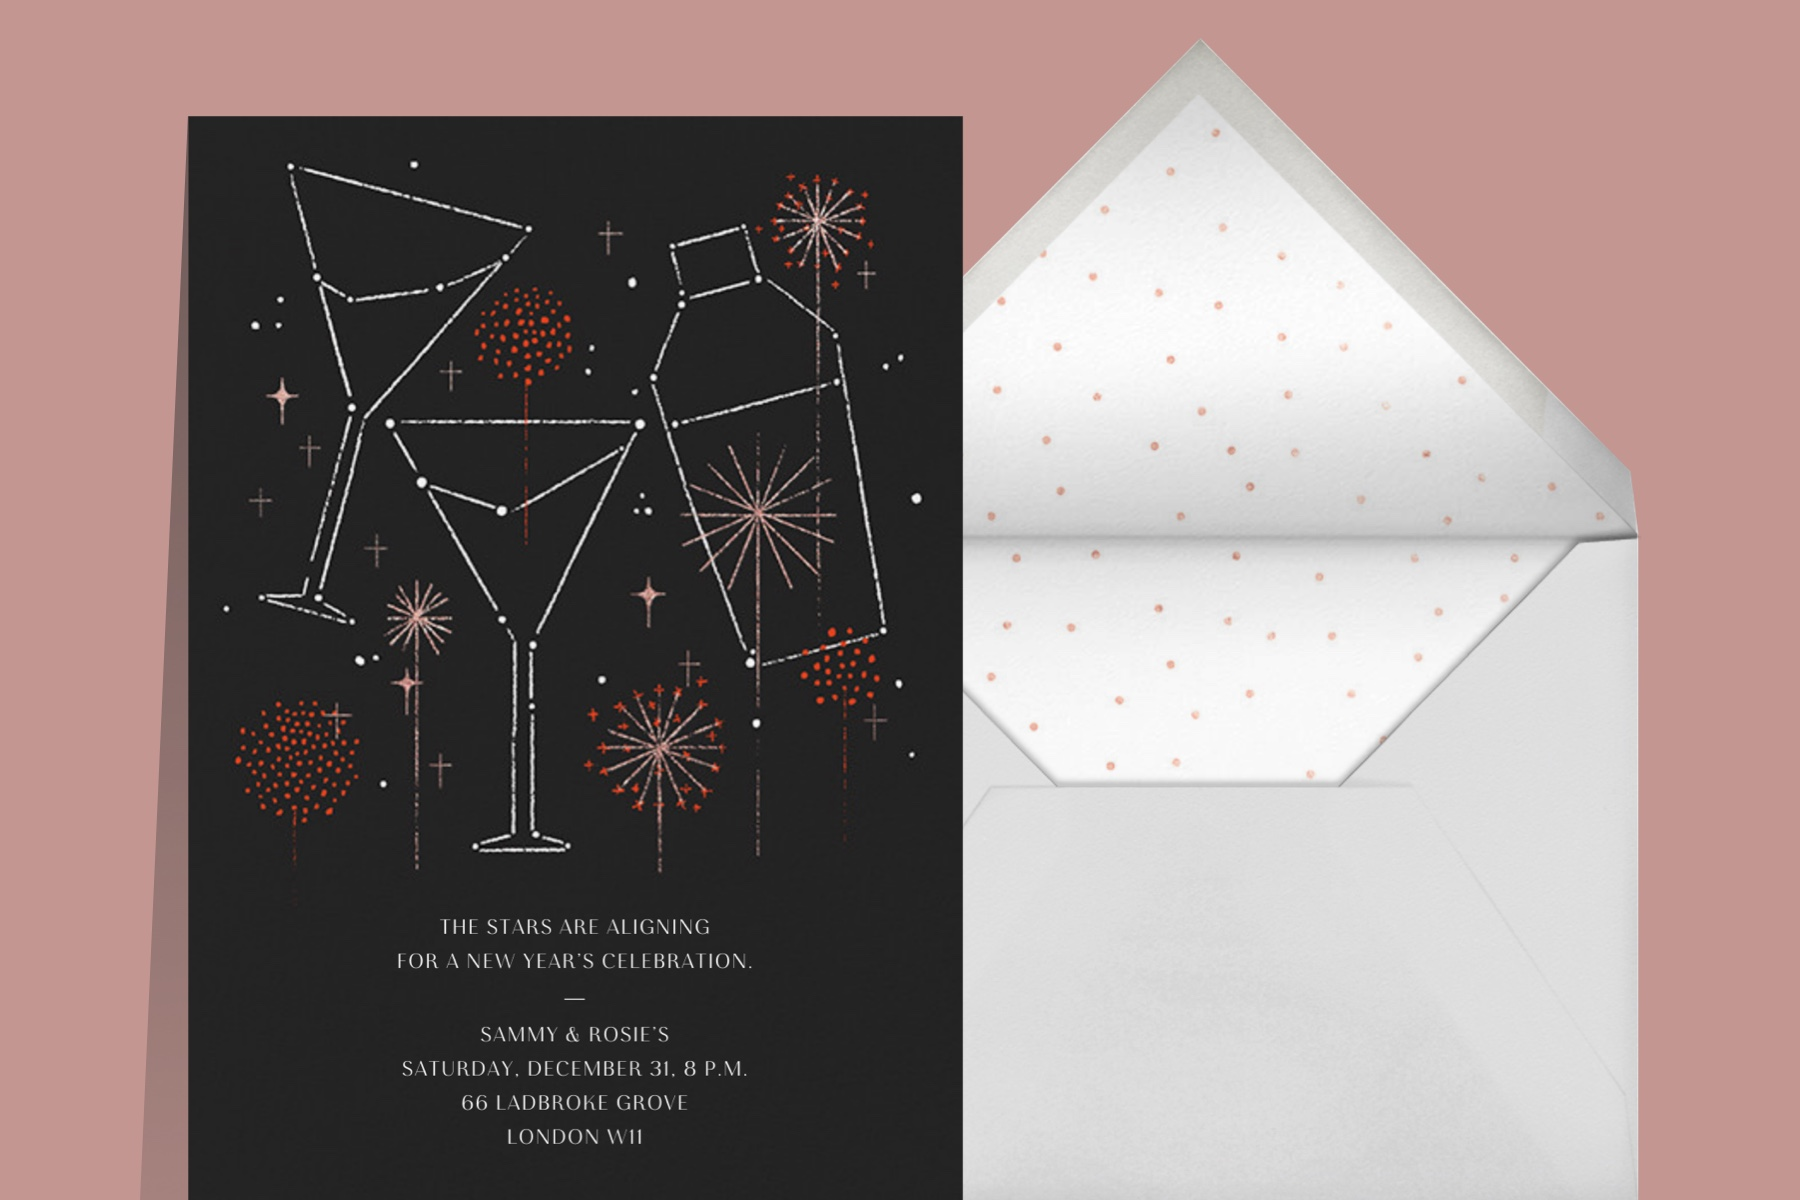 cocktail constellation New Years invitation for a cocktail or Champagne party